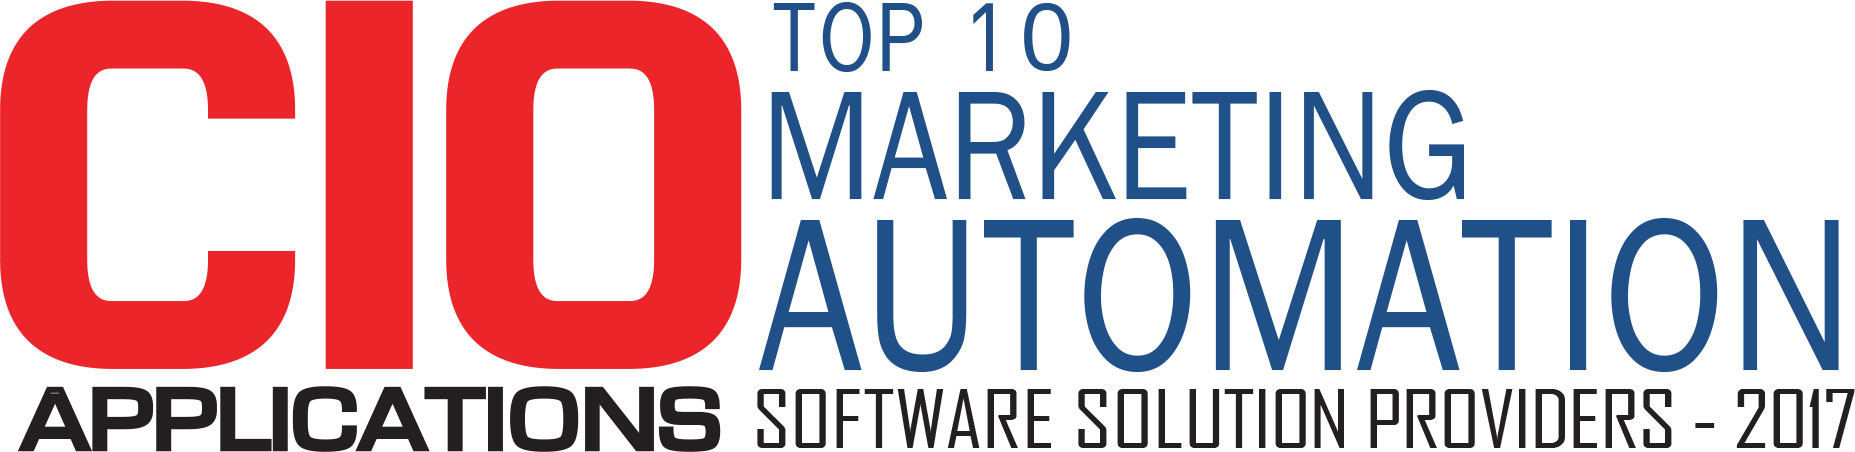 Top 10 Companies Providing Marketing Automation Software Solution - 2017